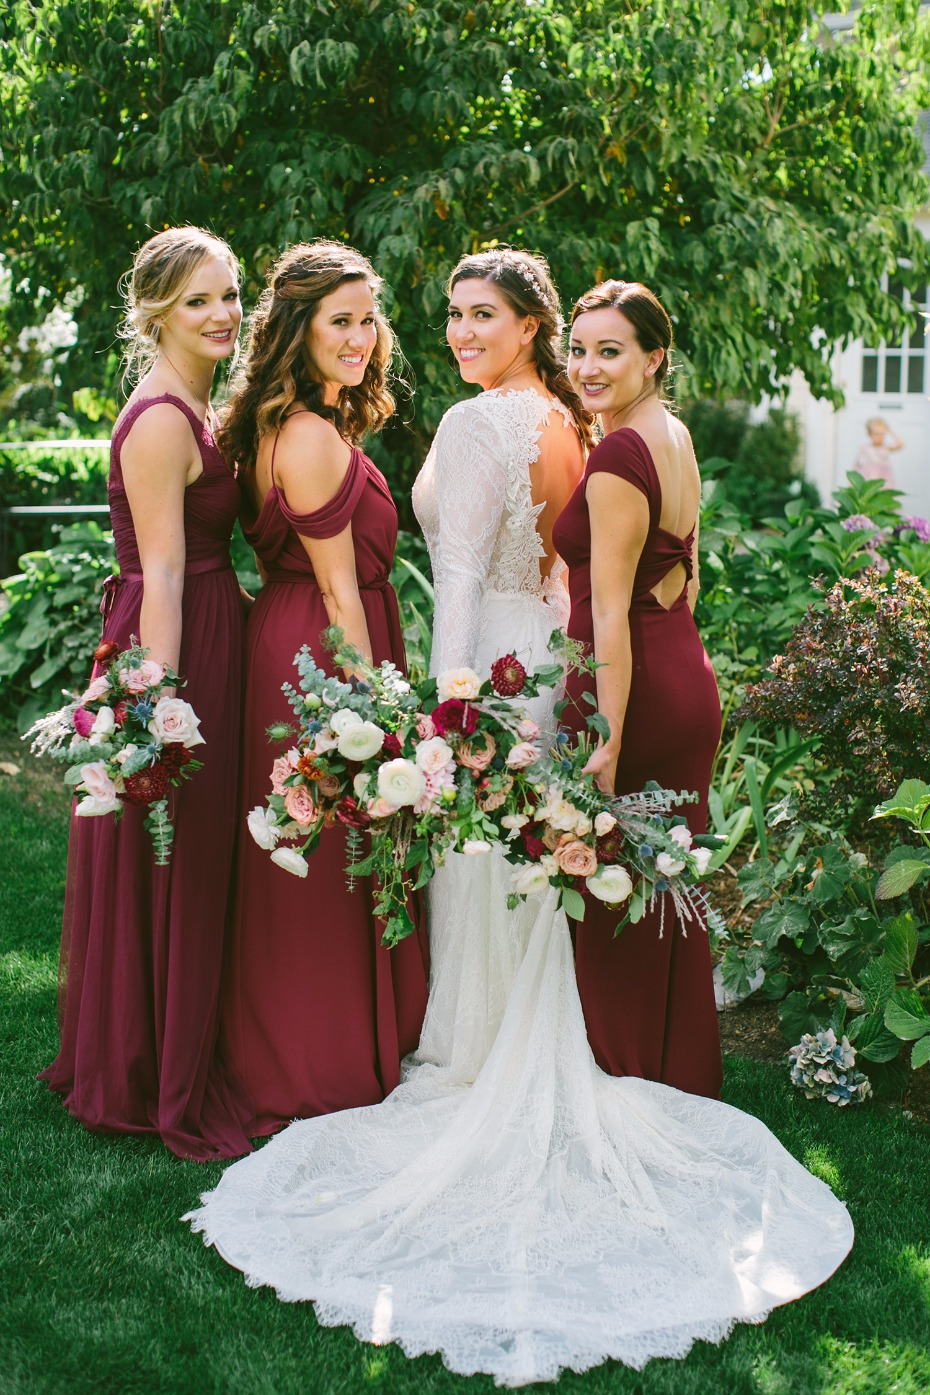 Mix and match burgundy bridesmaid dresses